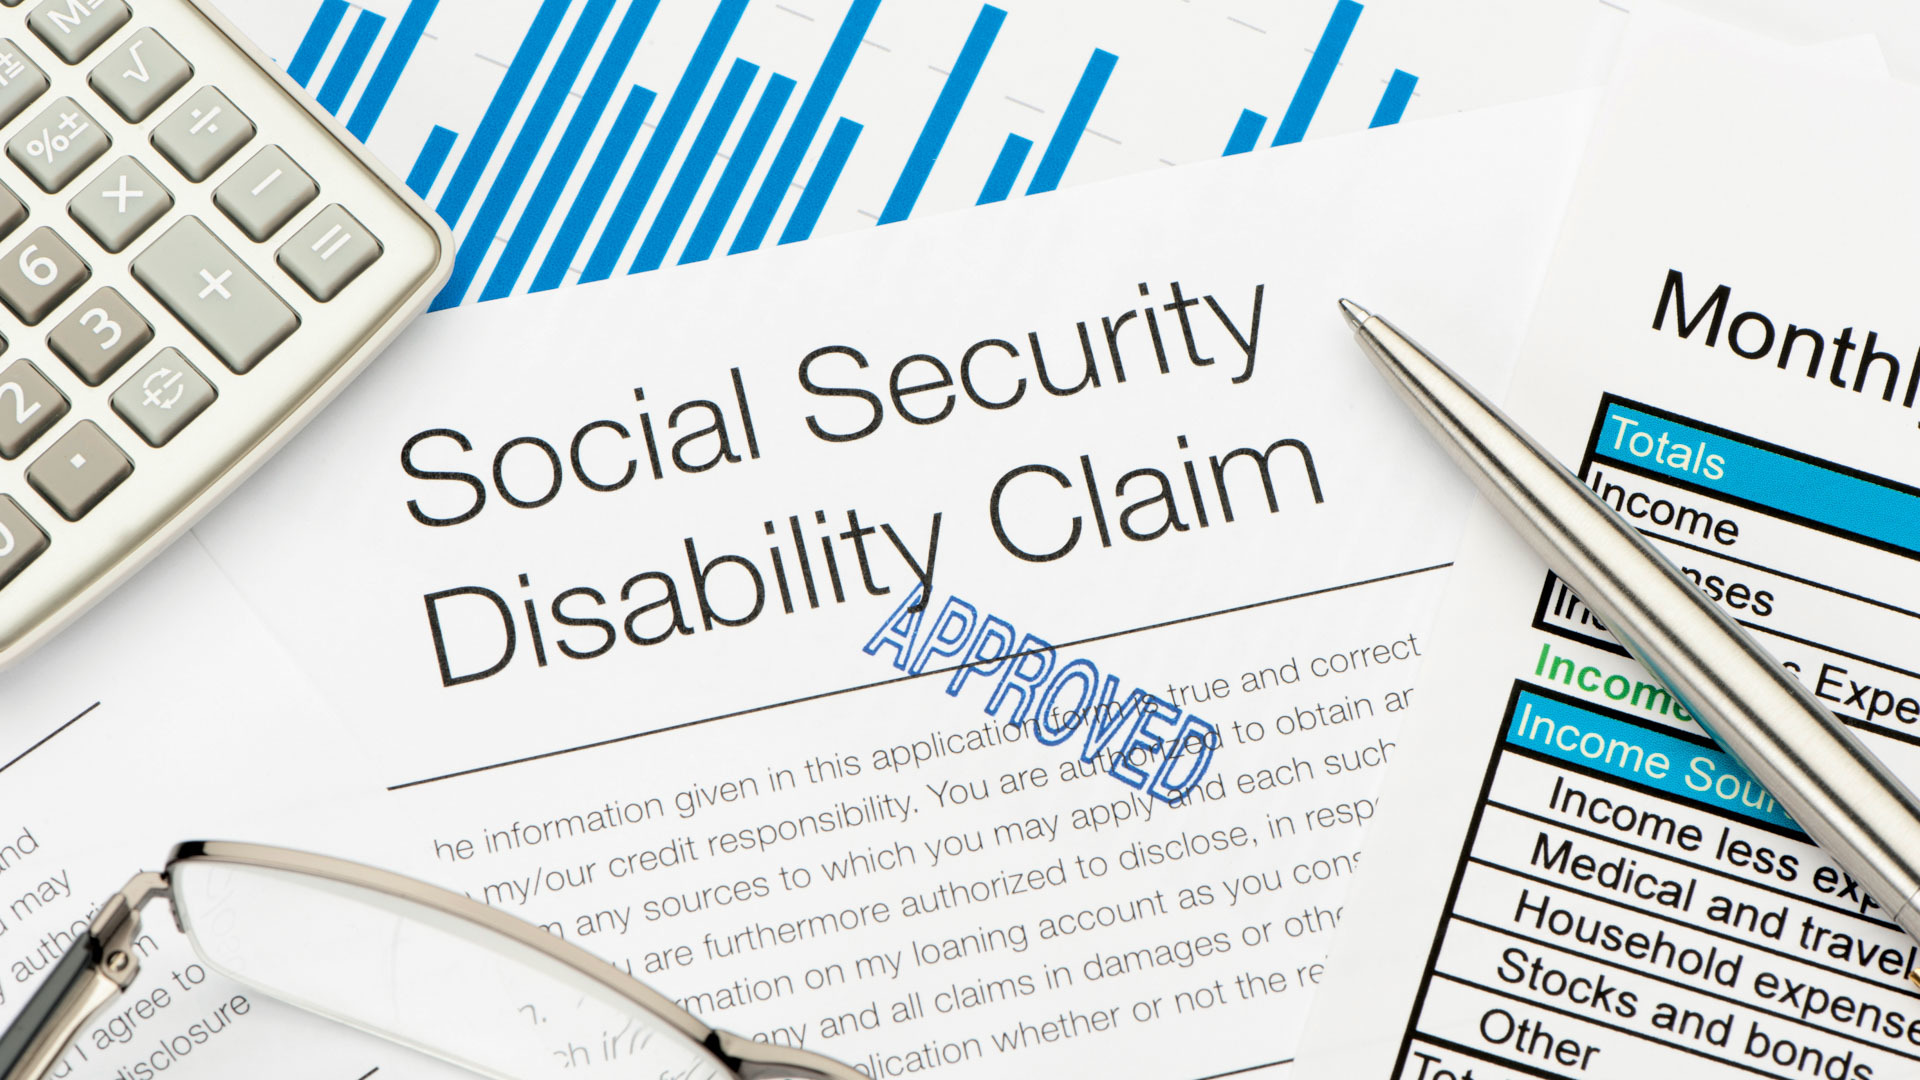 Northern New England S Young Adults And The Social Security Disability Insurance Program